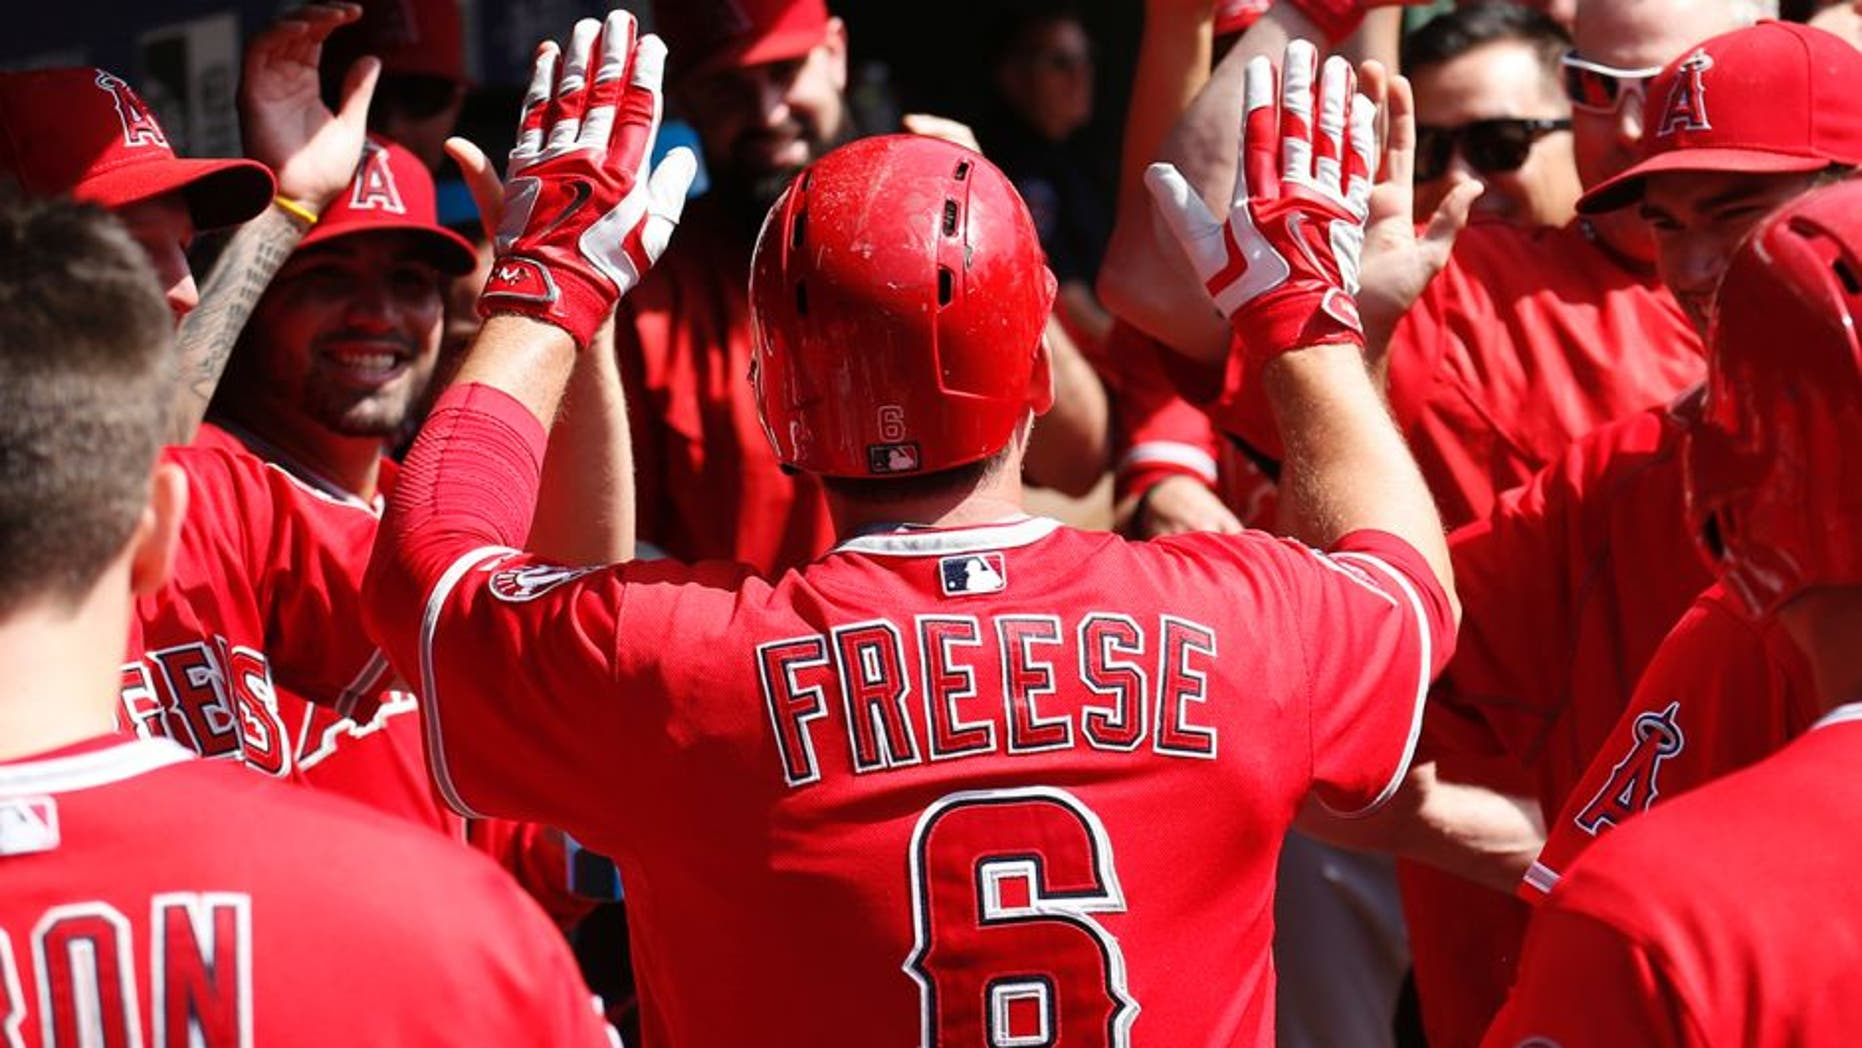 Oct 3, 2015; Arlington, TX, USA; Los Angeles Angels third baseman David Freese (6) celebrates his run with teammates against the Texas Rangers during the fifth inning of a baseball game at Globe Life Park in Arlington. Mandatory Credit: Jim Cowsert-USA TODAY Sports